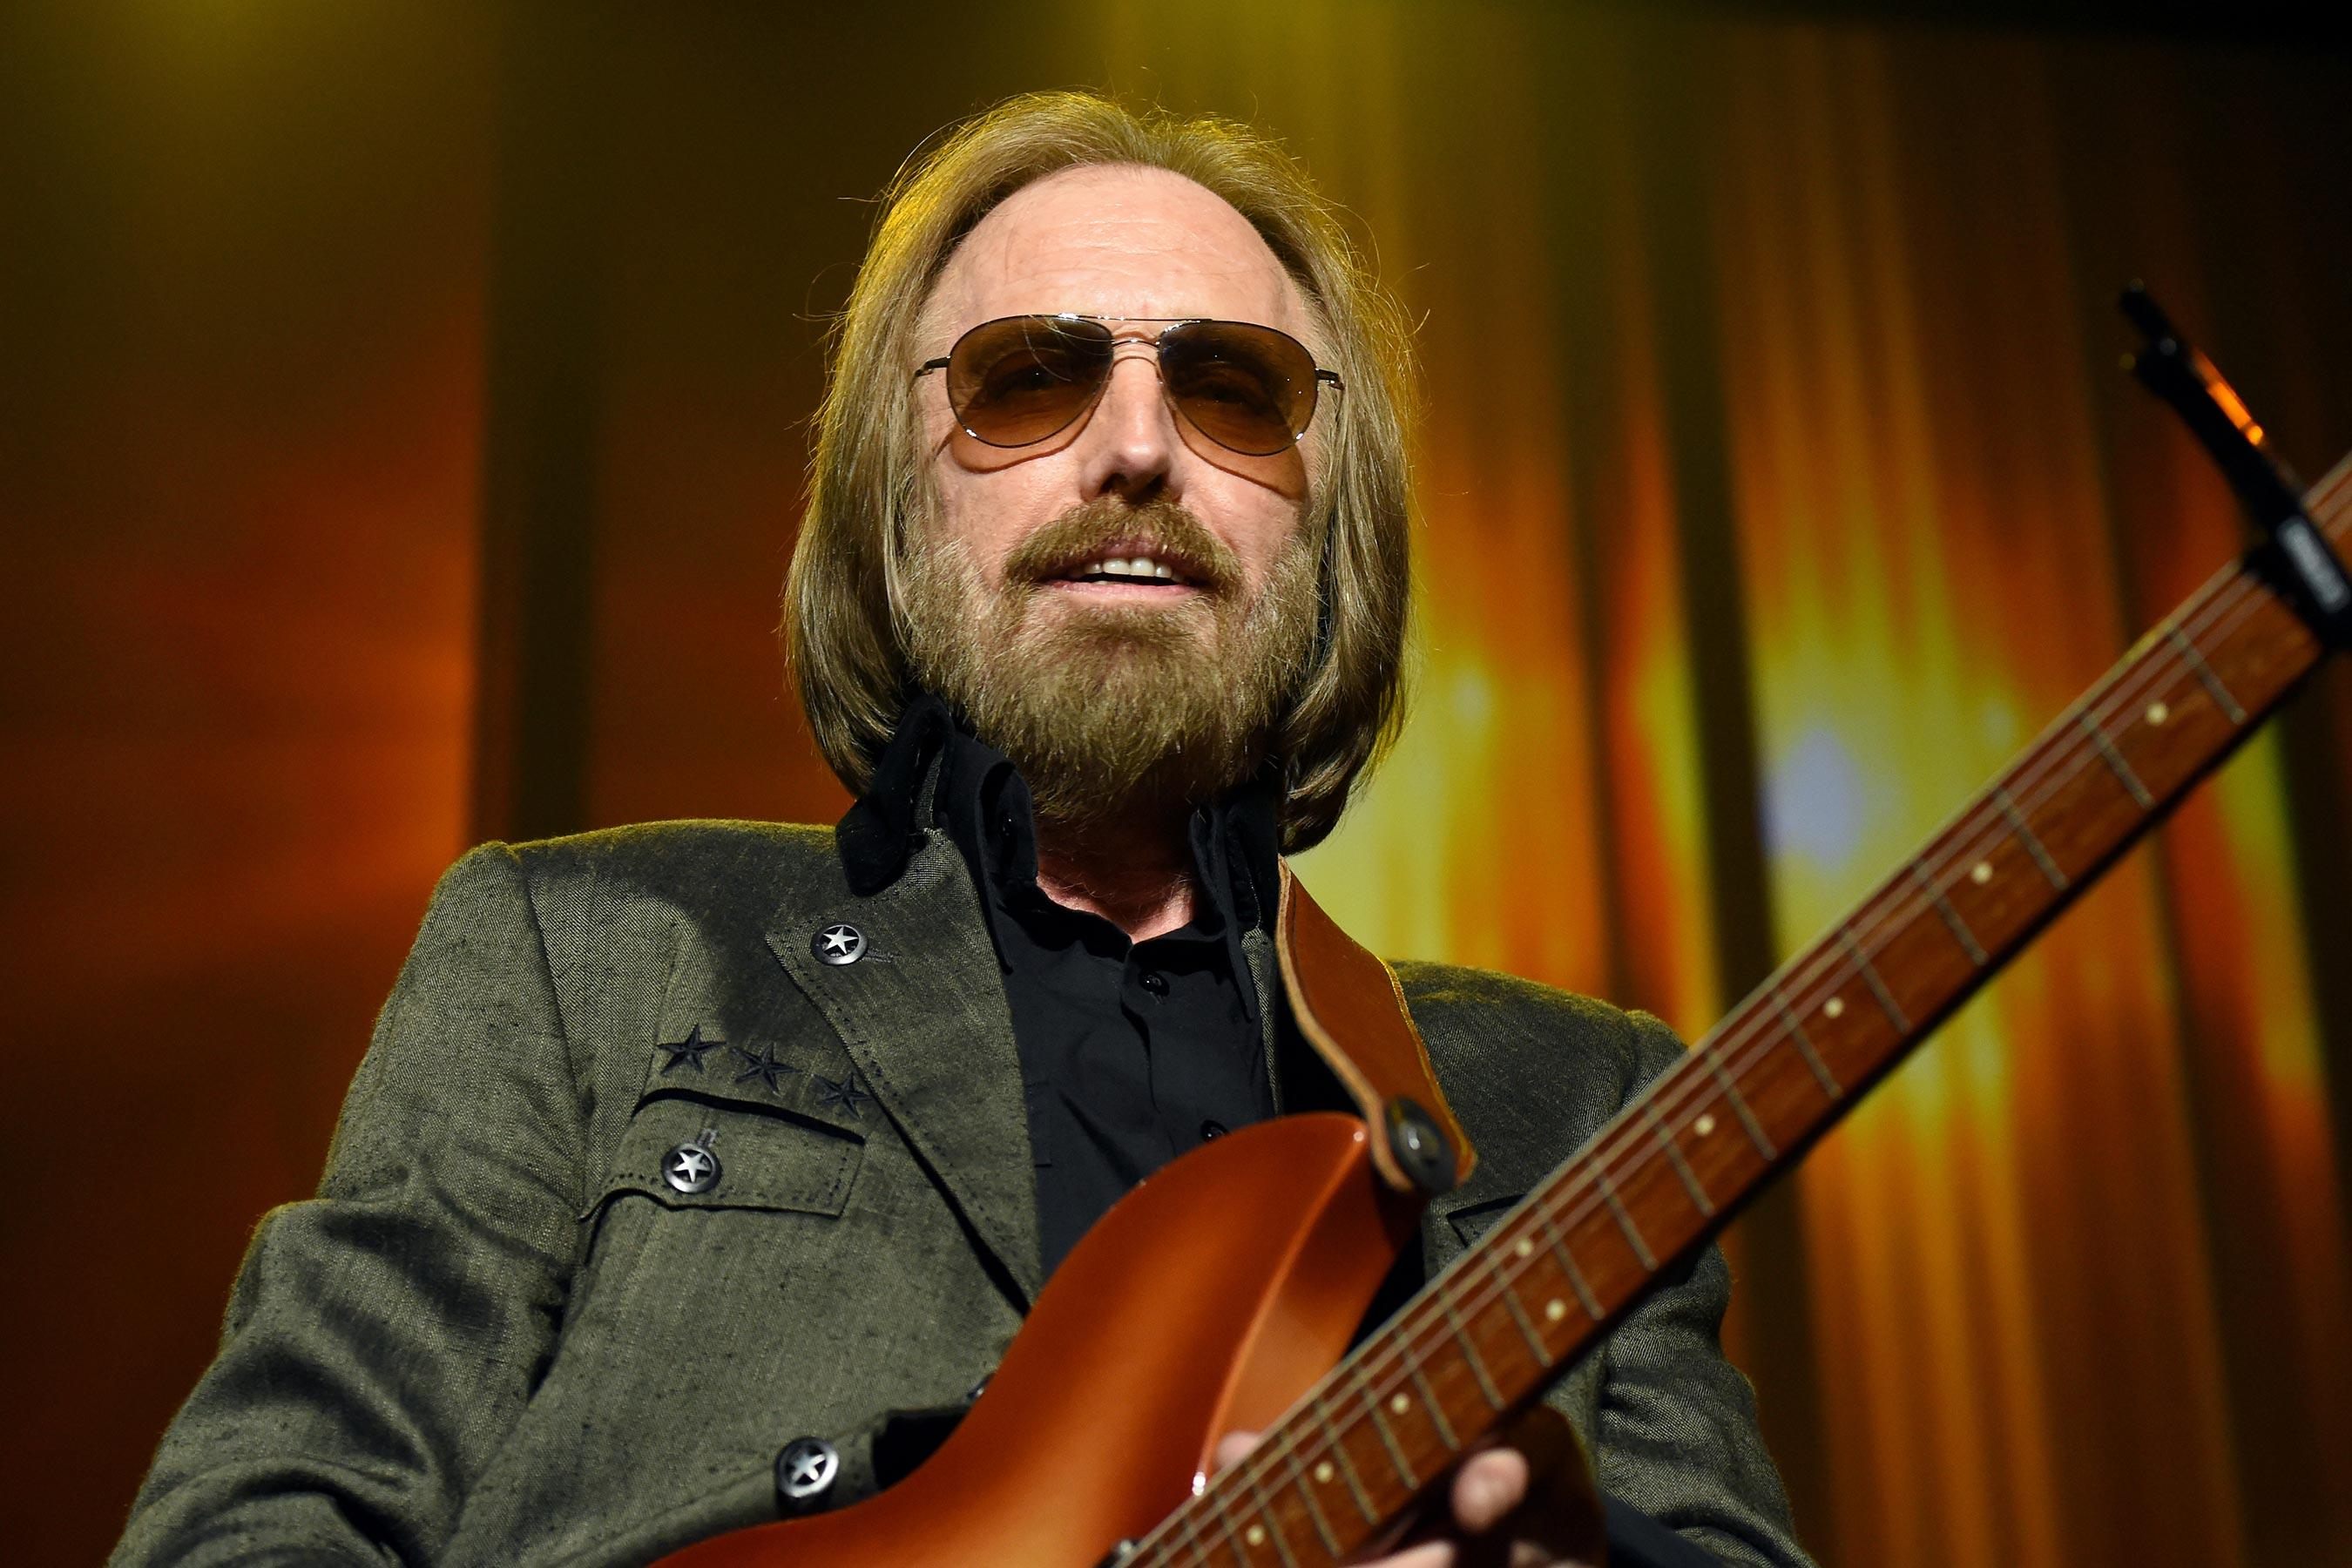 Powered by imdb Tom Petty was born on October 20 1950 in Gainesville Florida USA as Thomas Earl Petty He has been married to Dana York since June 3 2001